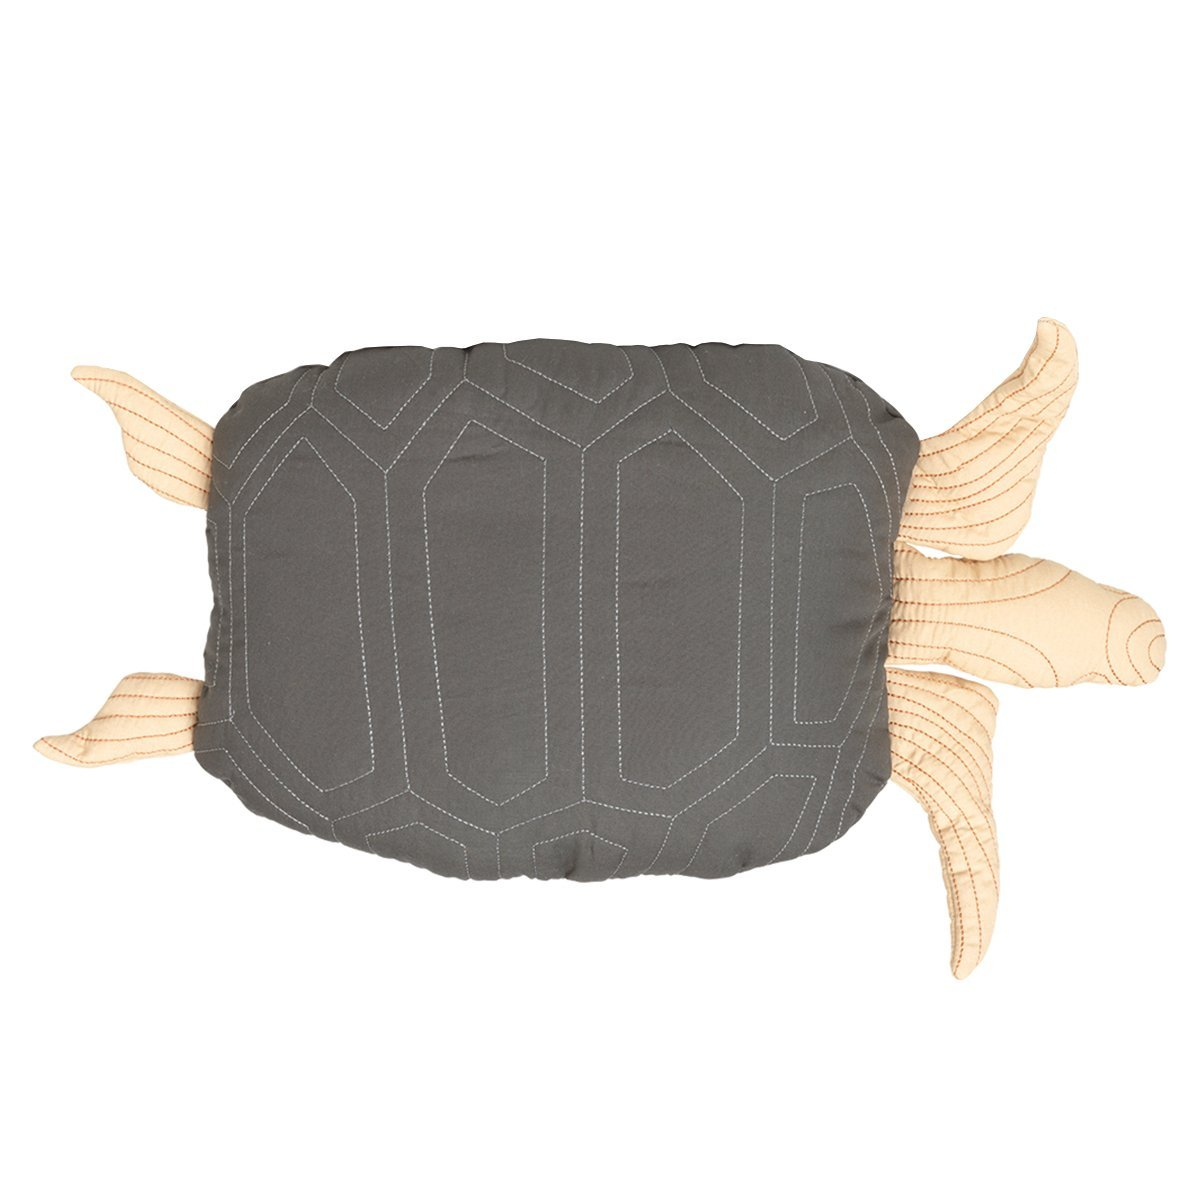 Ferm Living Turtle Quilted Kussen - 49 x 32 x 6 cm.